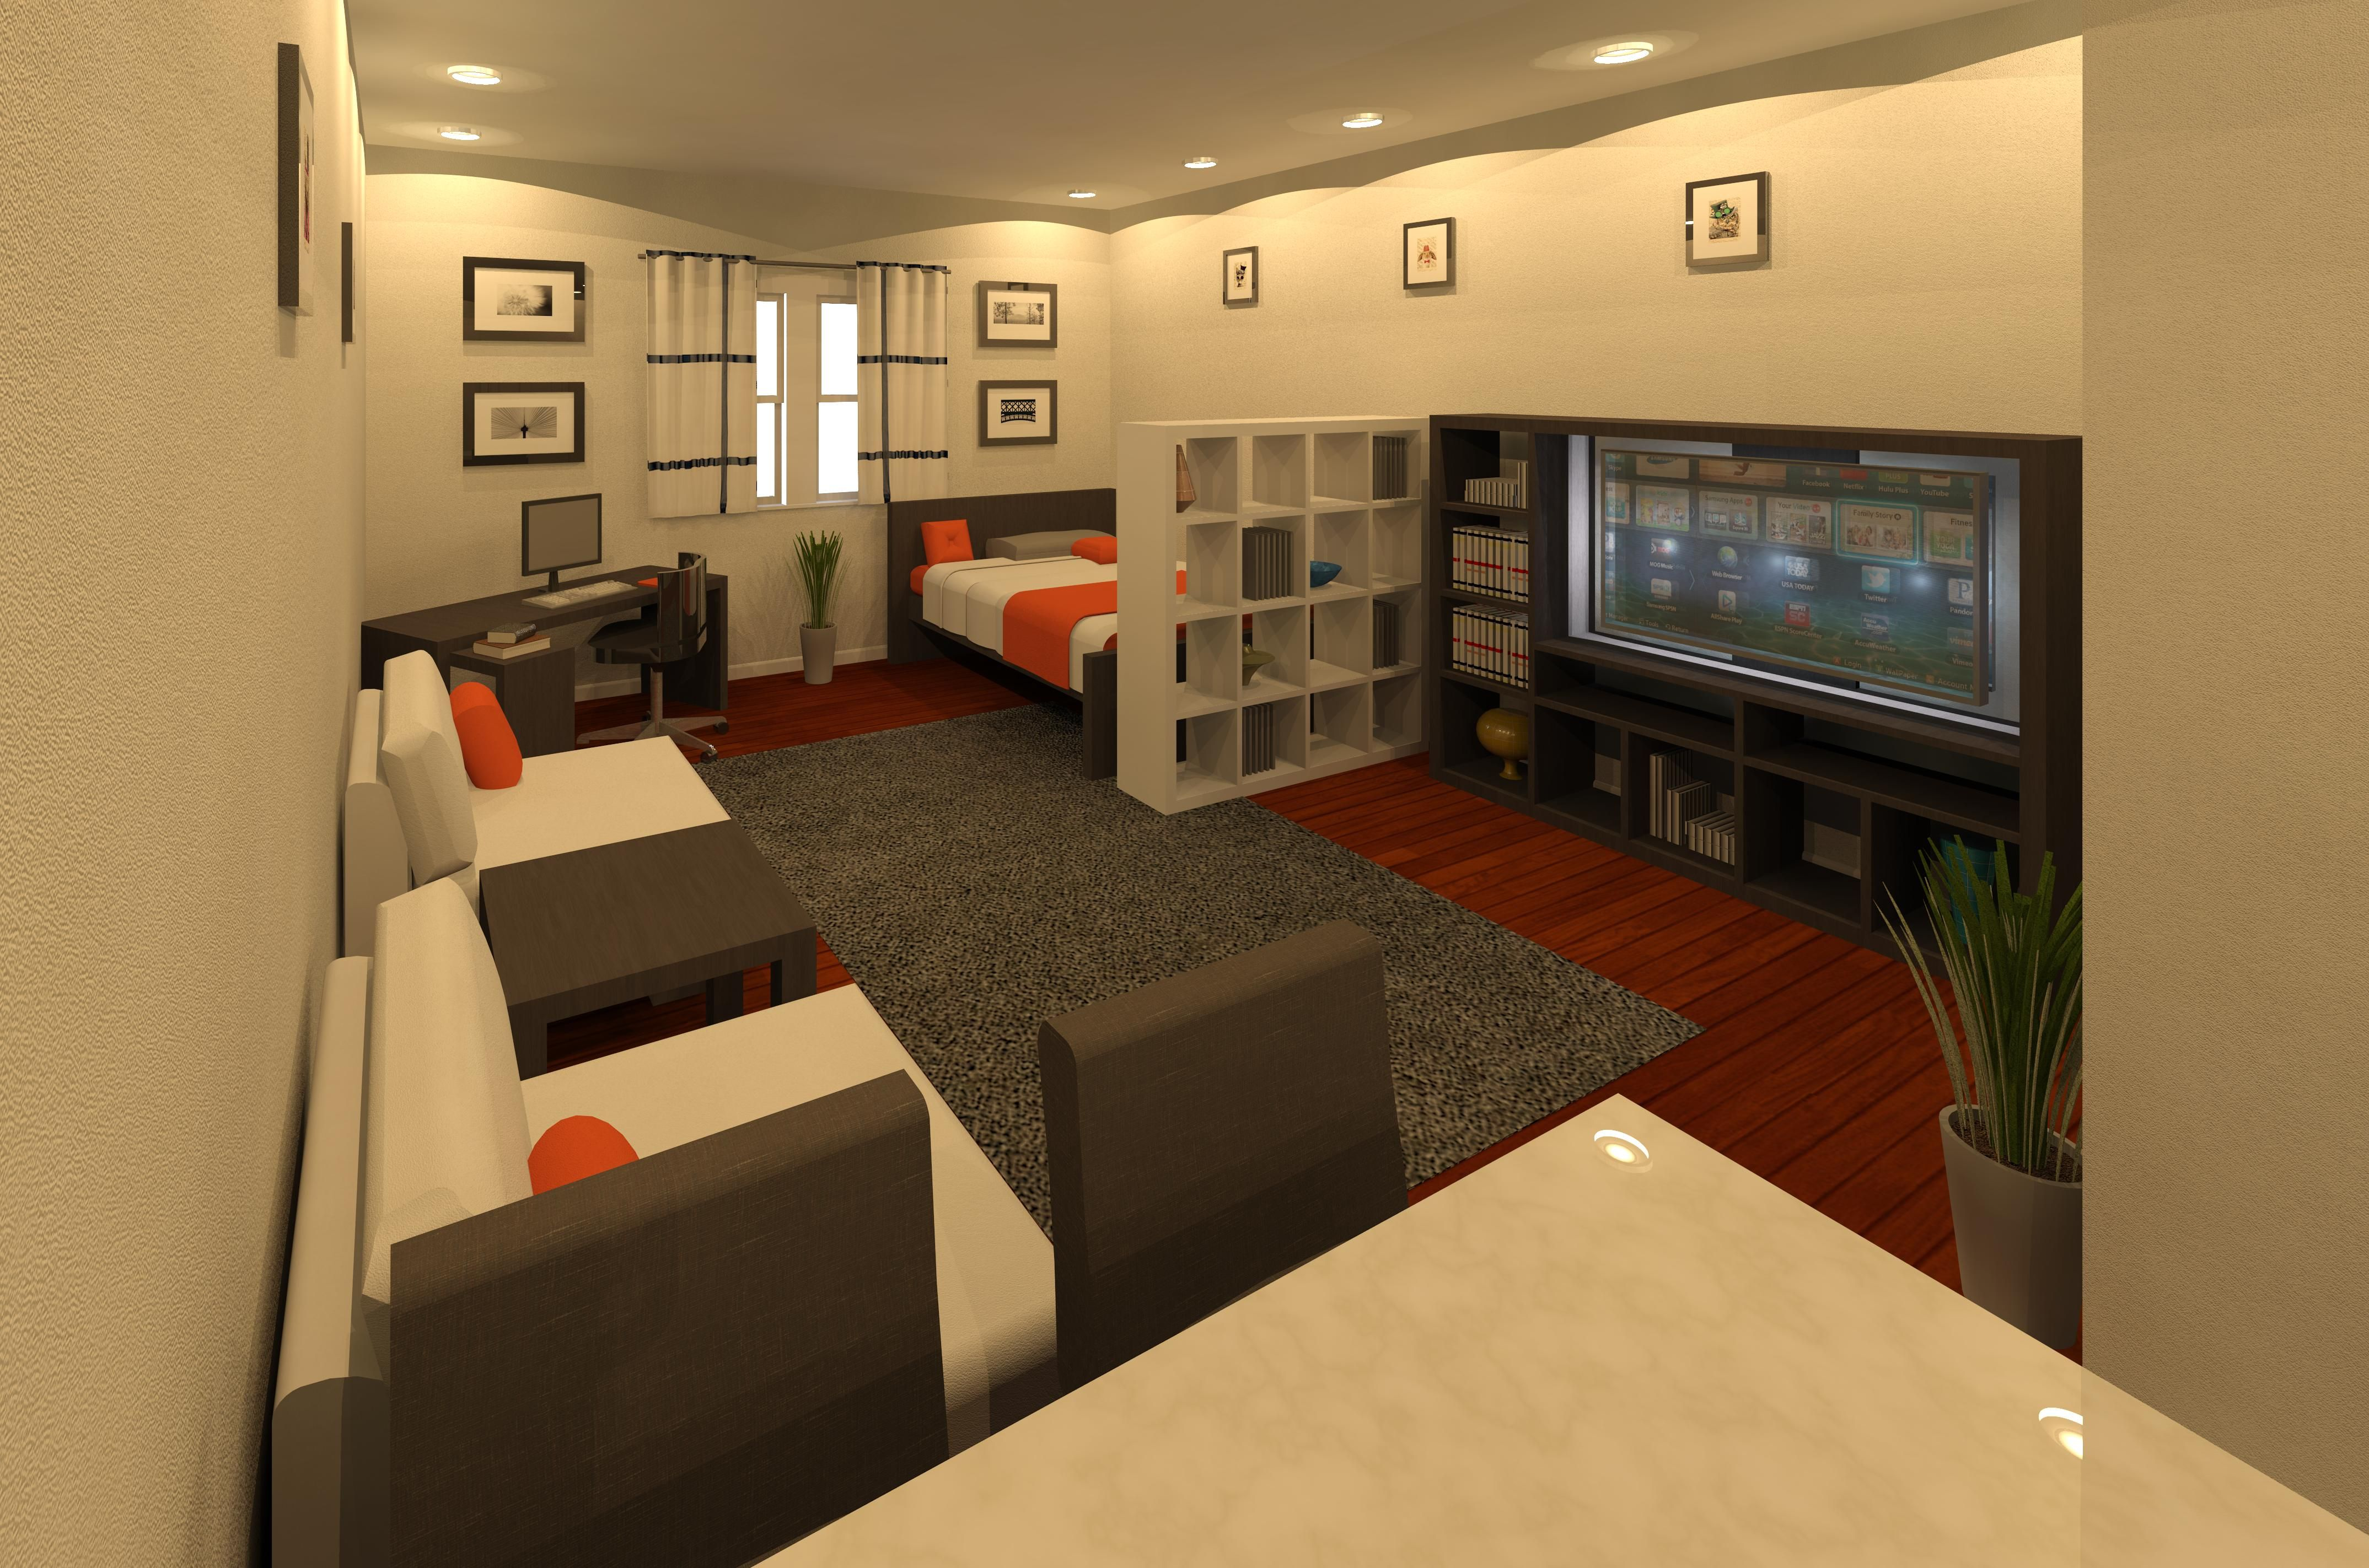 Interior Design For One Bedroom Flat 1 Bedroom Apartment House Plans 4rm 5rm And Executive Maisonette Sg Livingpod Blog 1000 Ideas About Studio Apartment Design On Pinterest Apartment 10 Small One Room